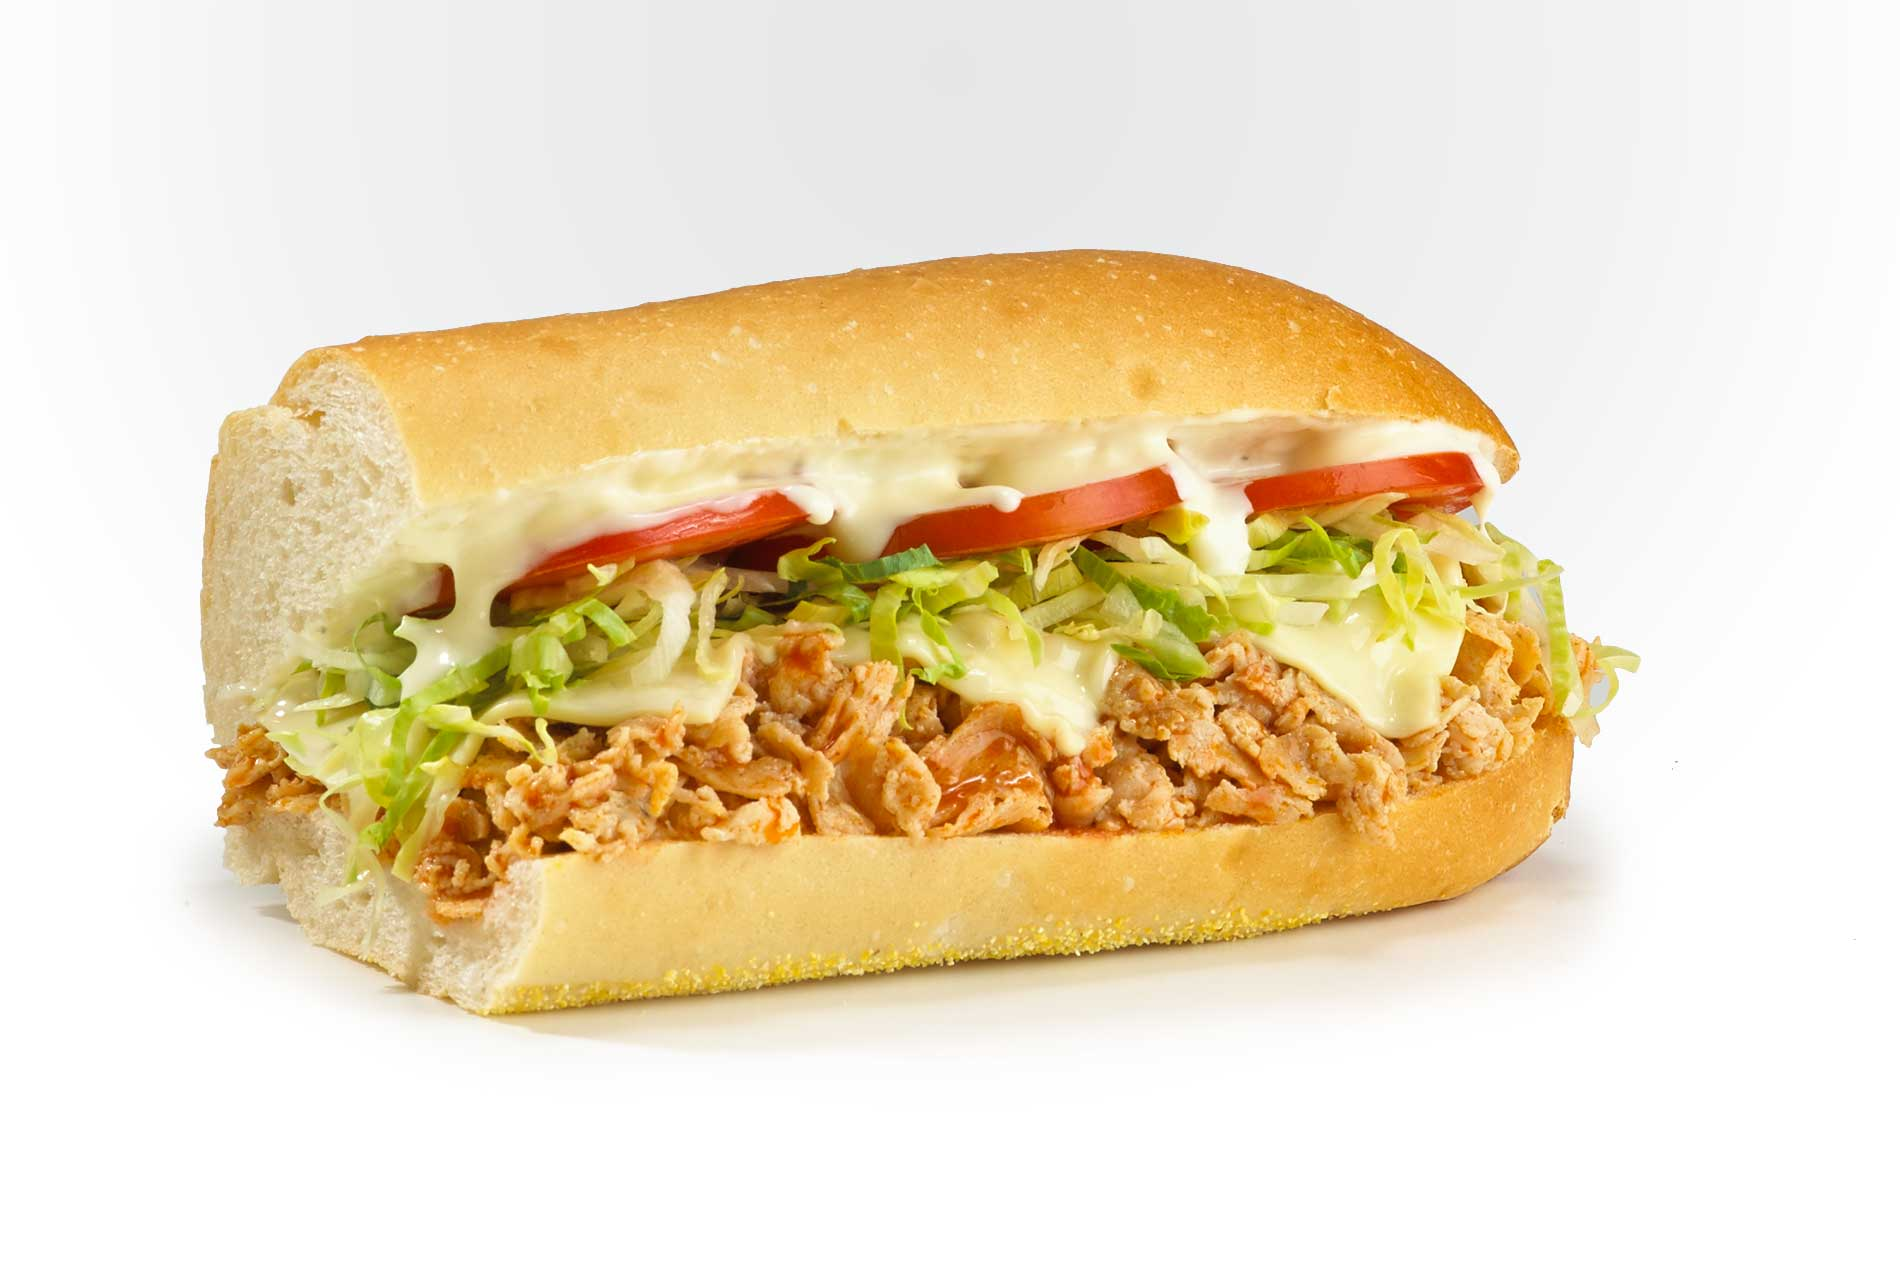 #44 Buffalo Chicken Cheese Steak - Fresh Grilled Hot Subs